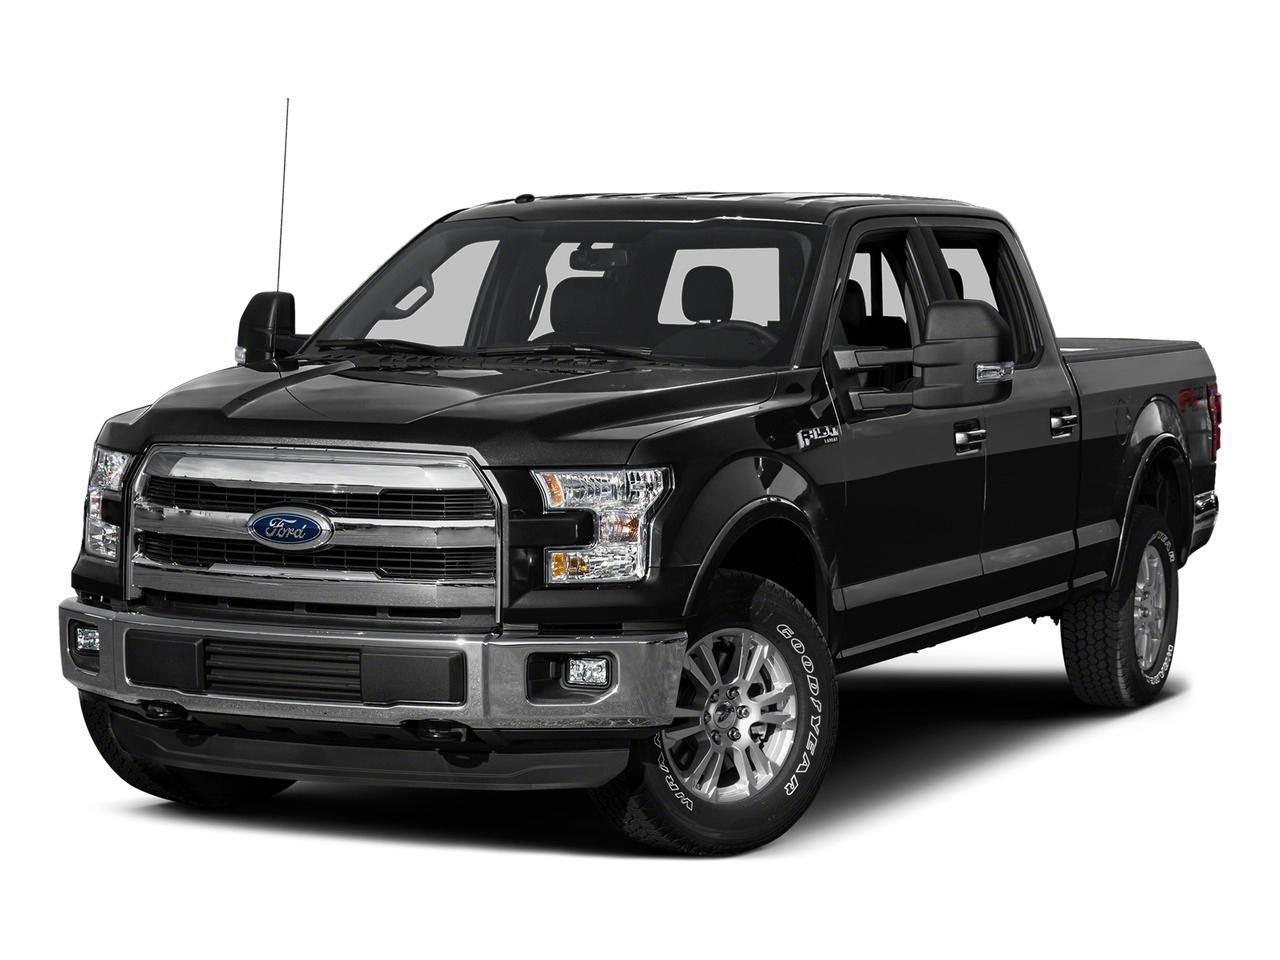 2015 Ford F-150 Vehicle Photo in Midland, TX 79703